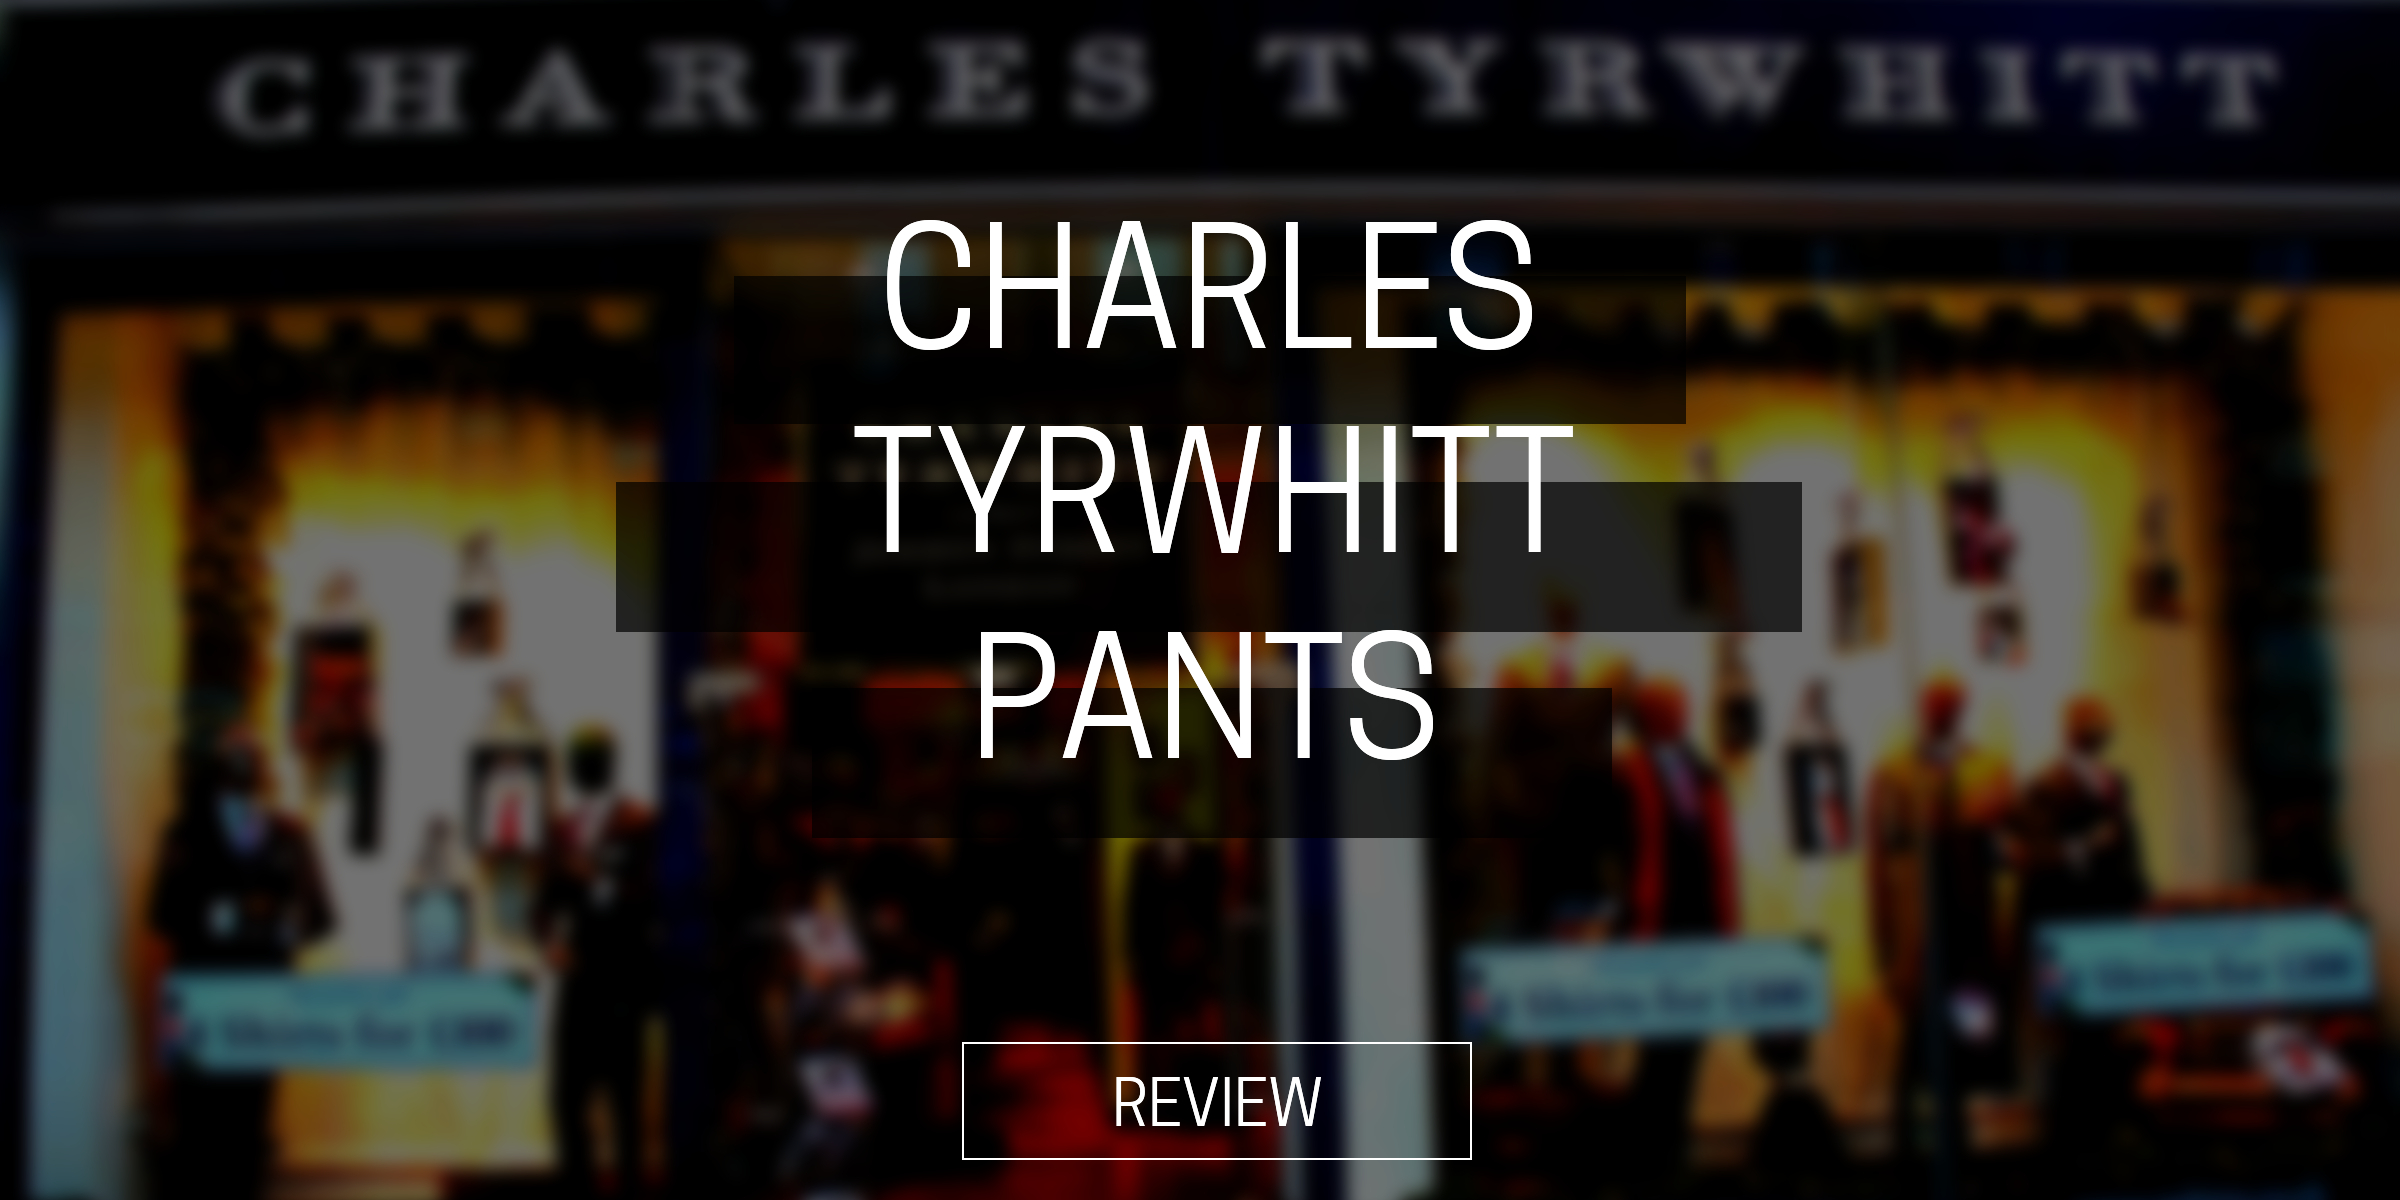 Review The New Extra Slim Fit Stretch Chino And More From Charles